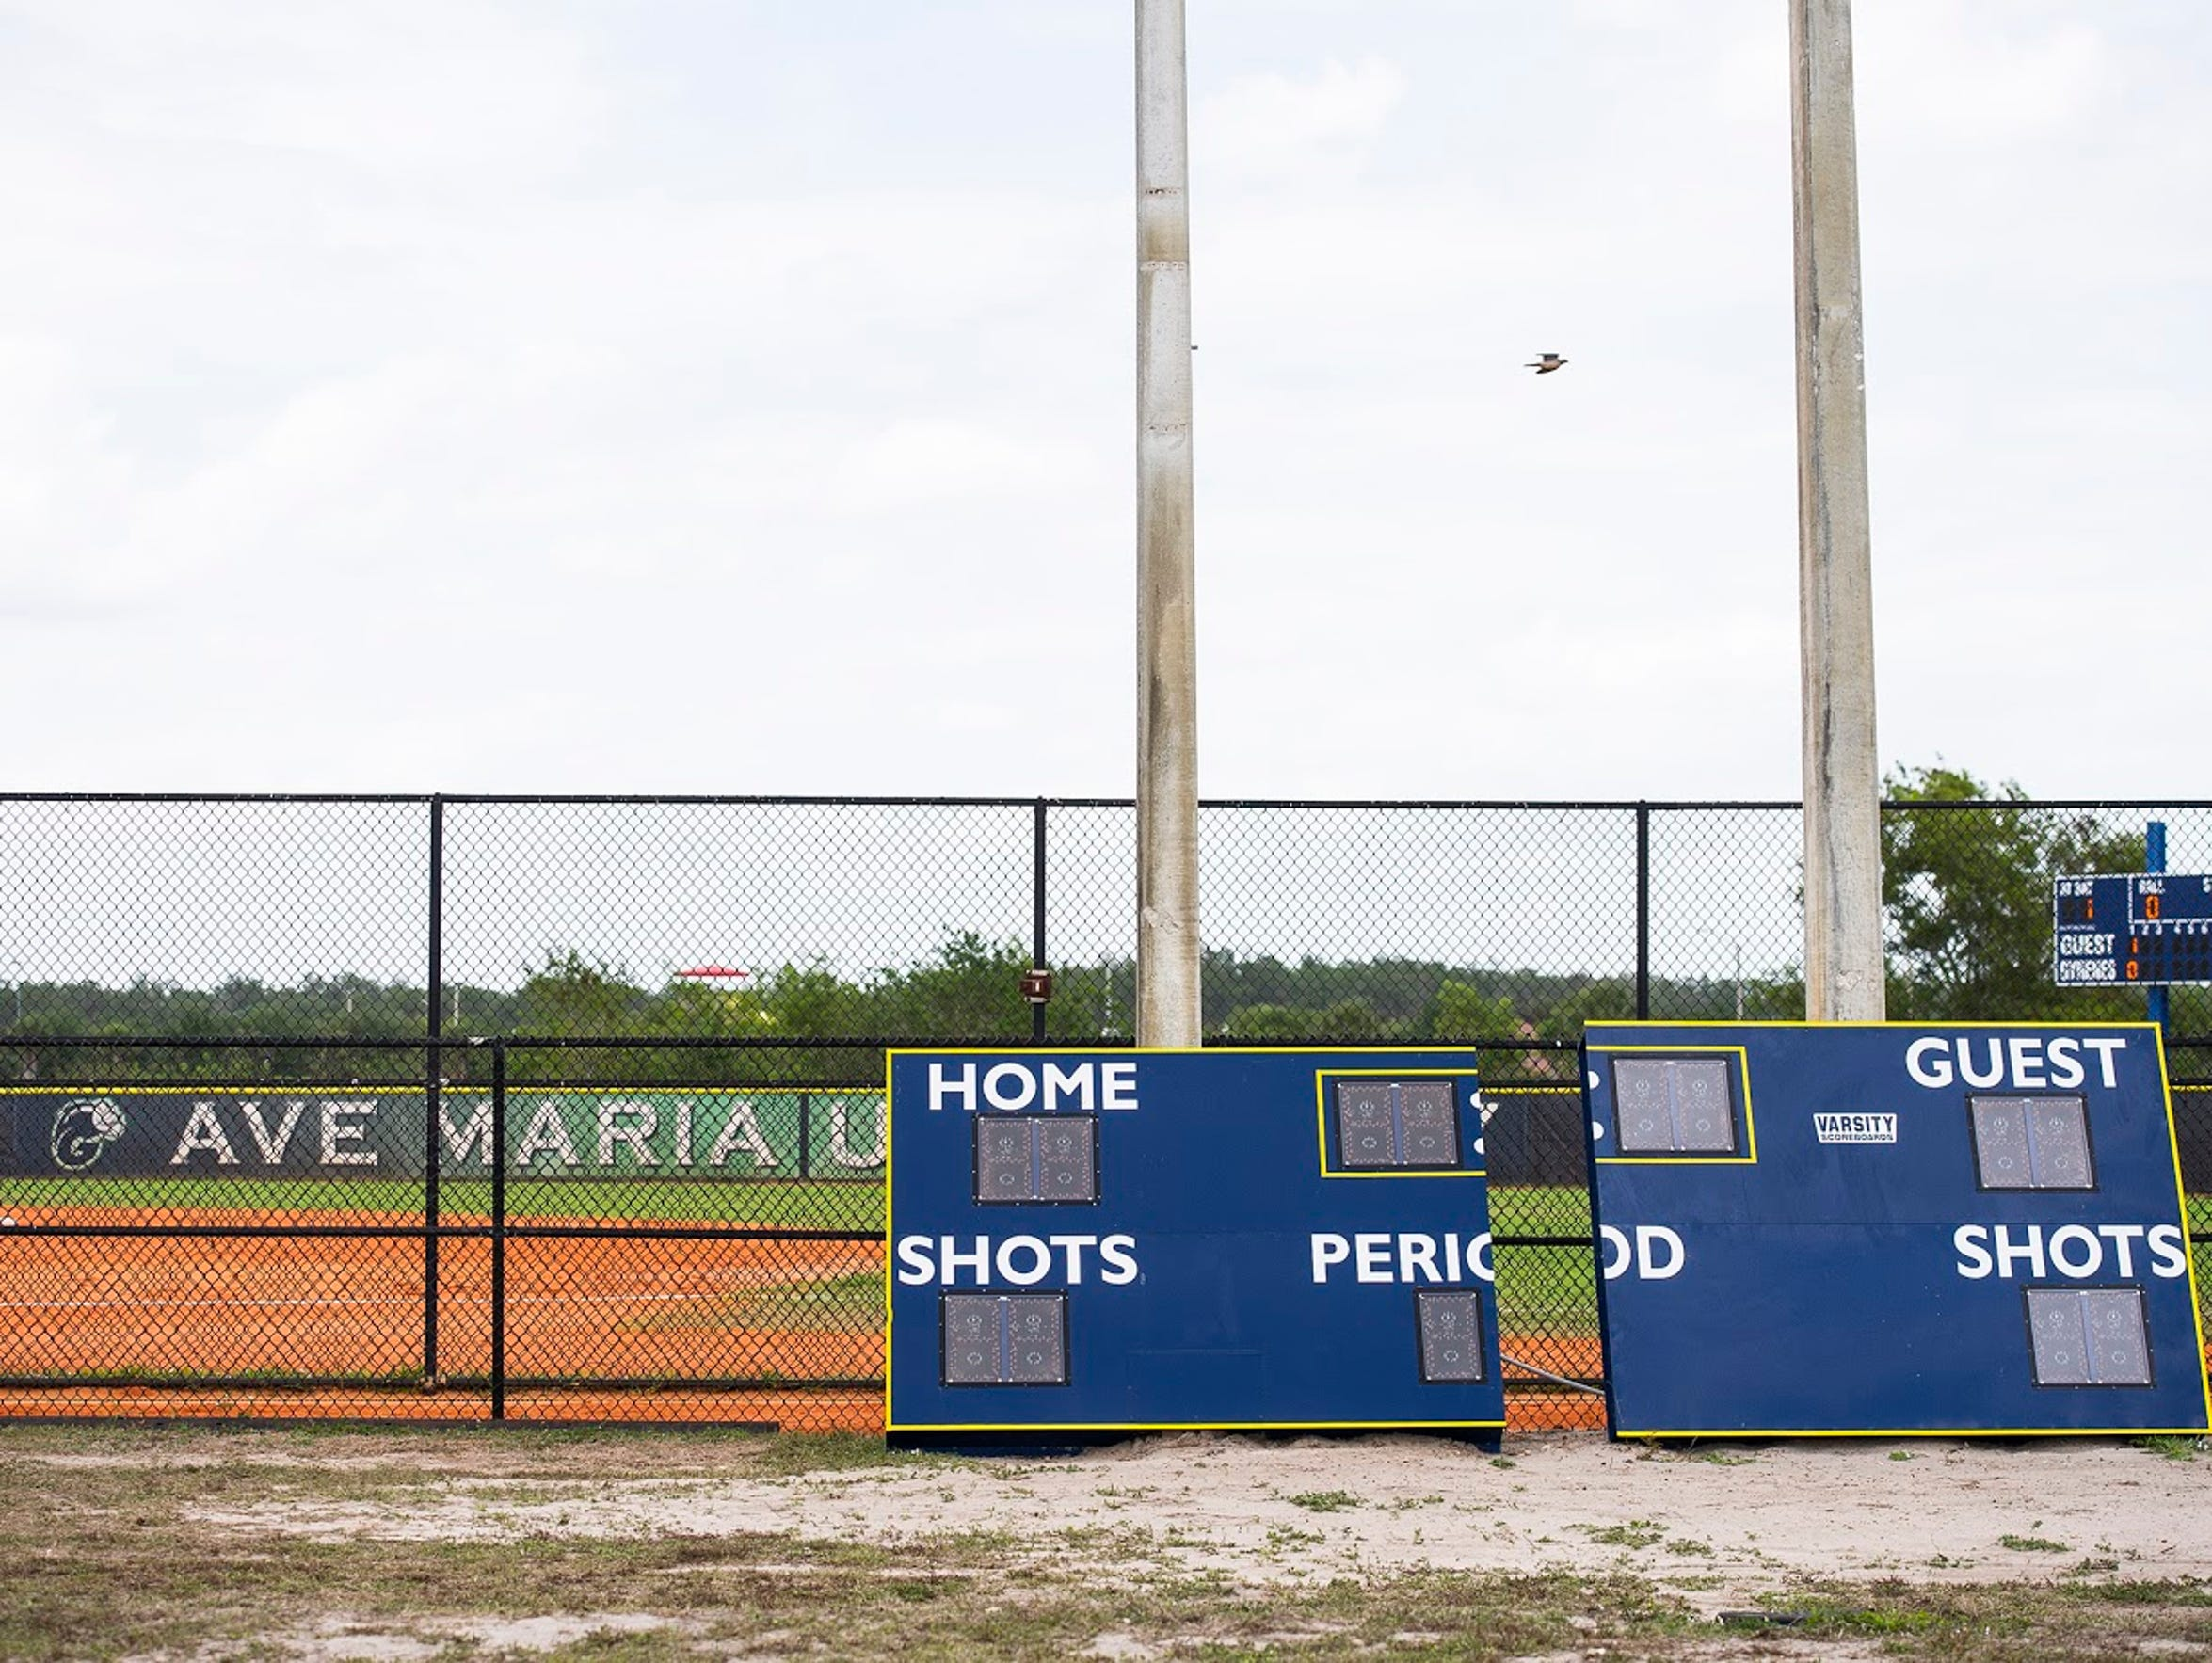 Ave Maria softball